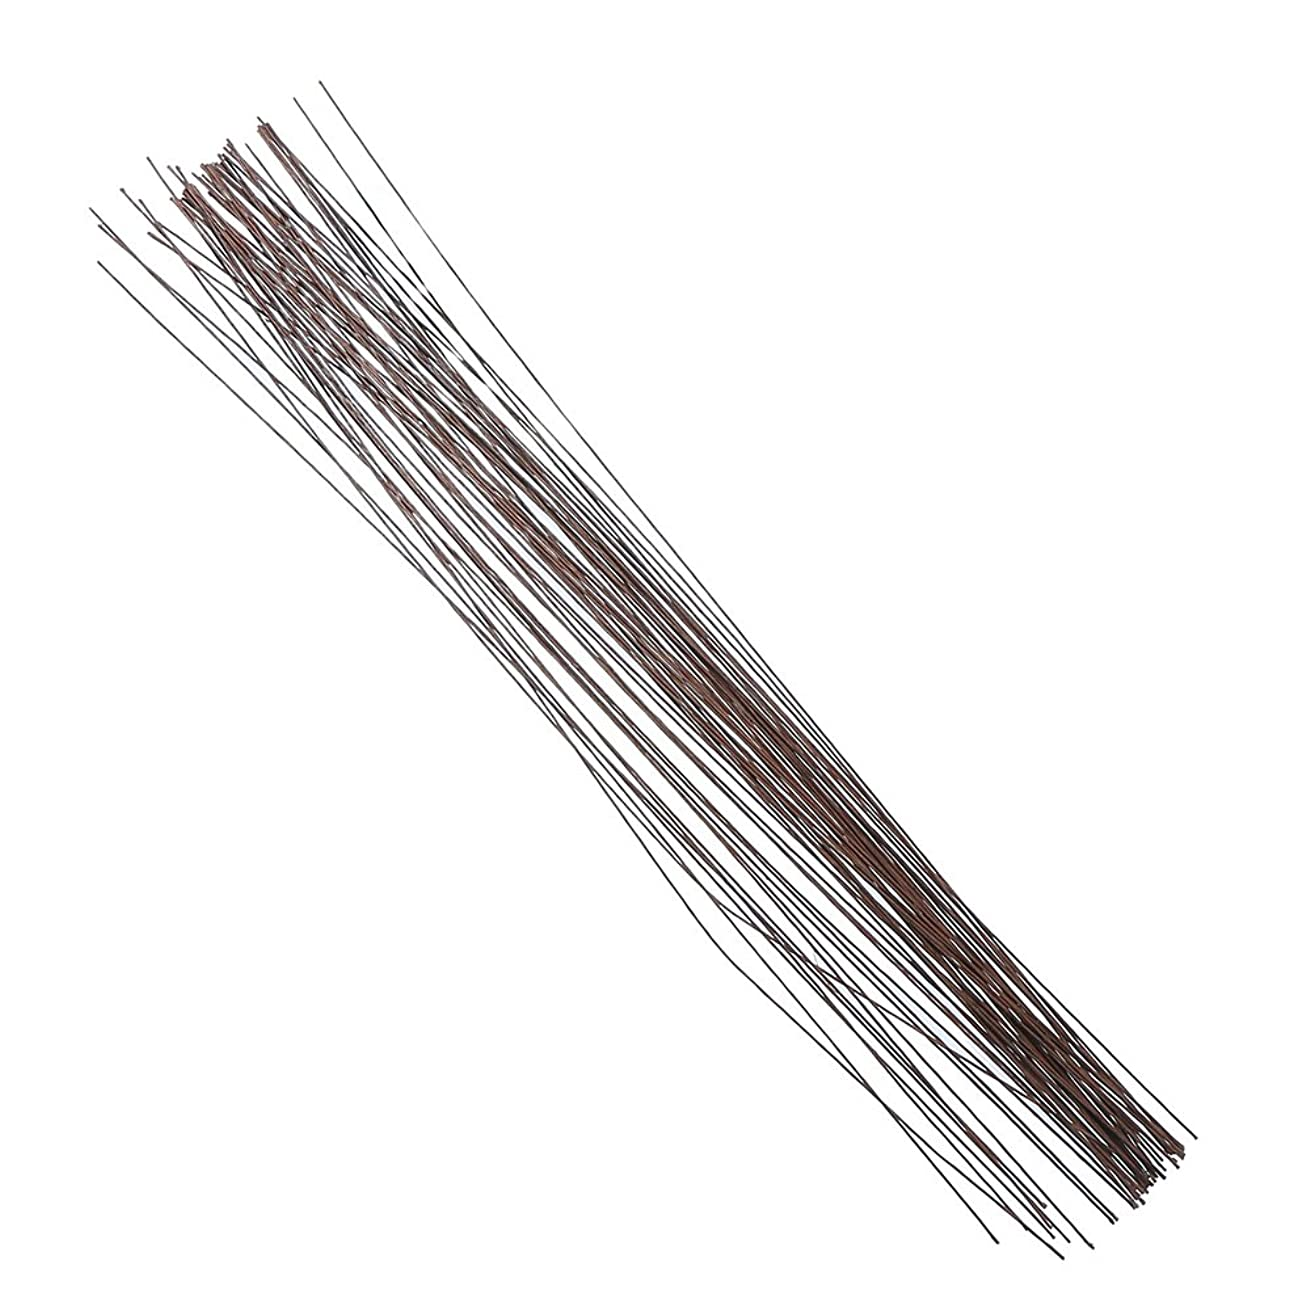 Decora 22 Gauge Brown Floral Wire 16 inch,50/Package